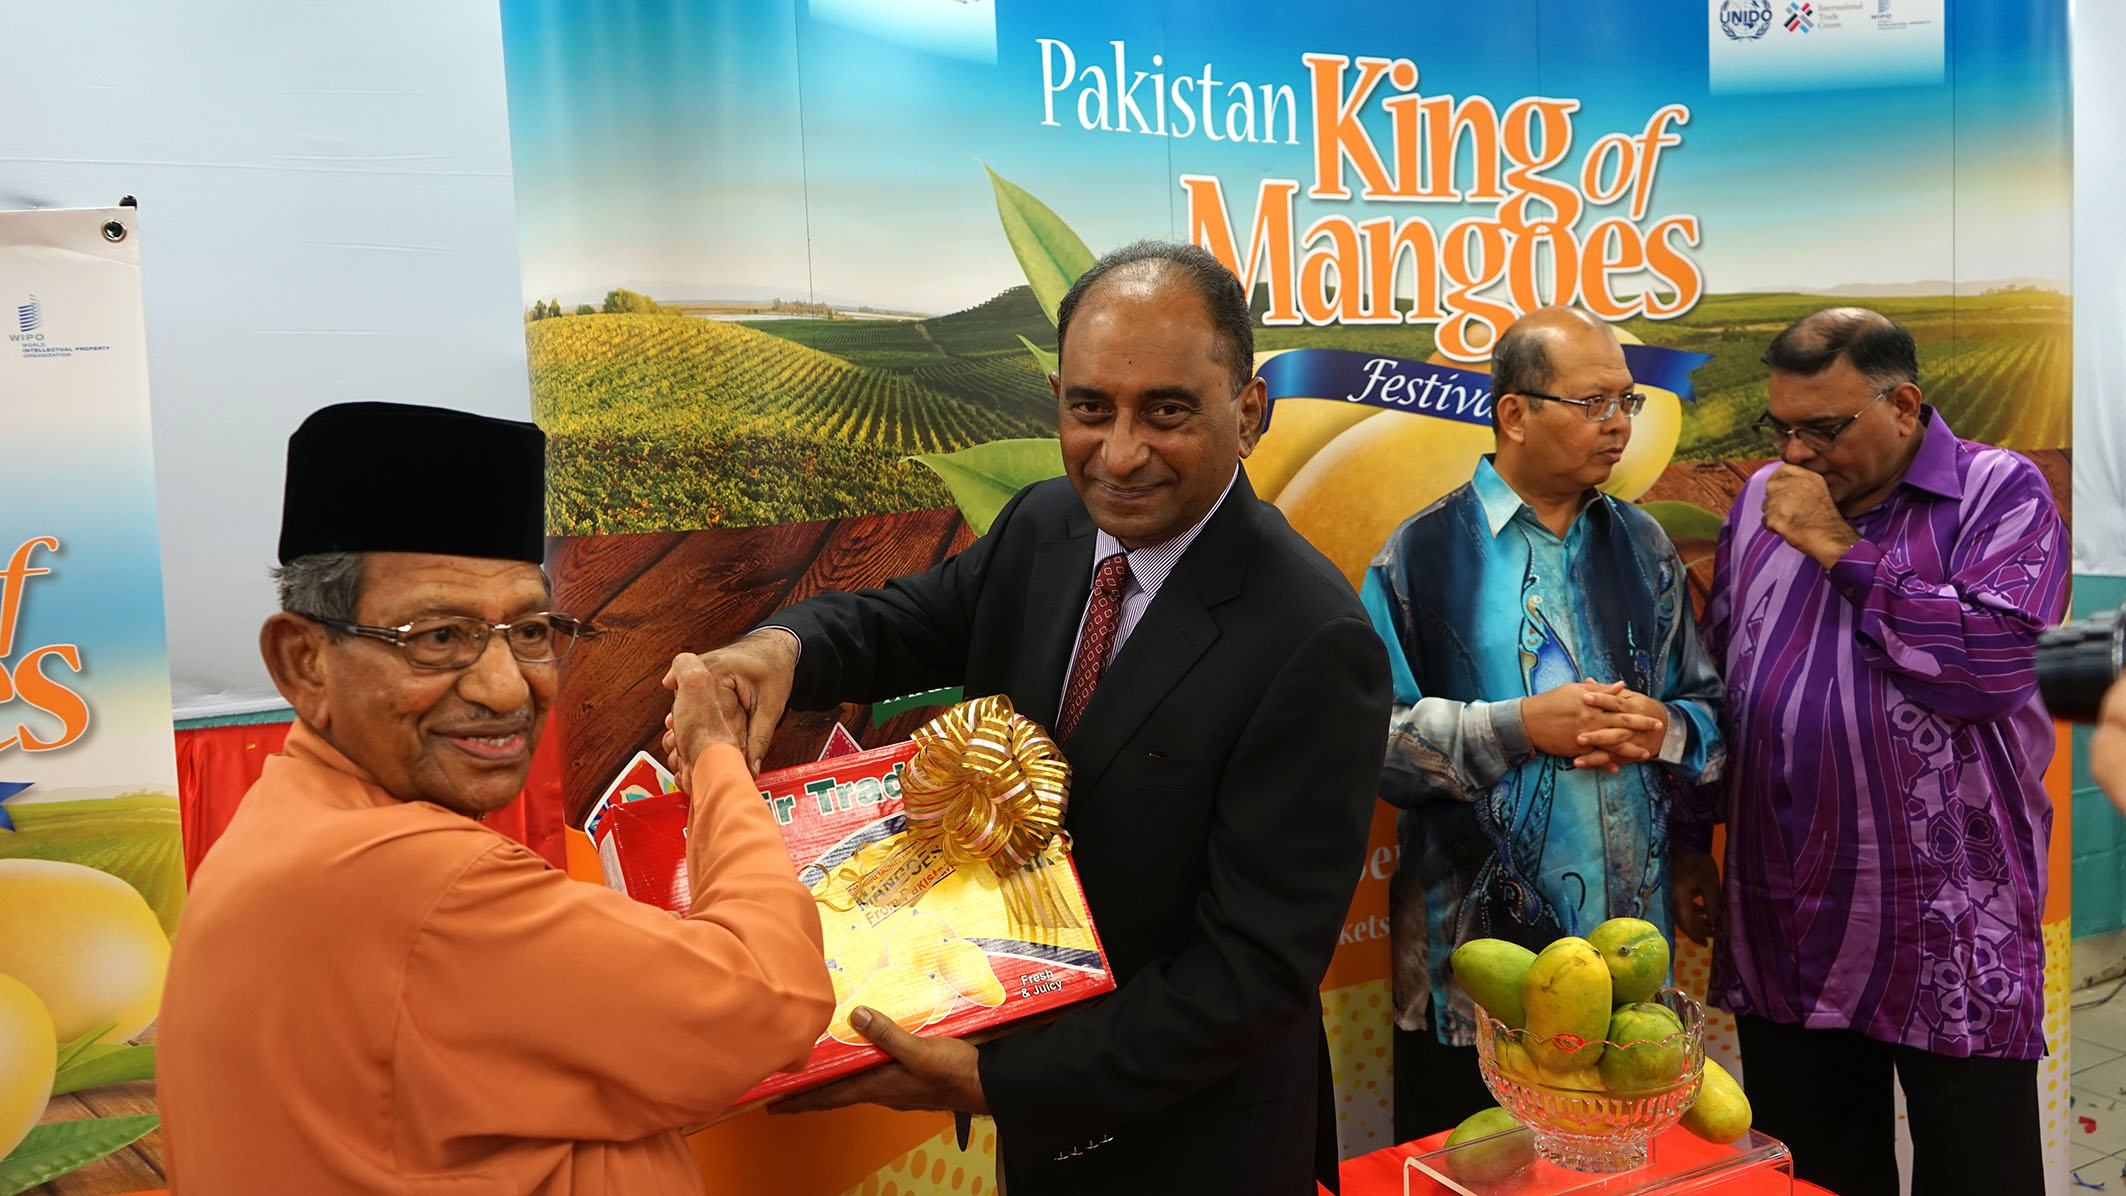 (L-R) Tan Sri Yusoff Latif receiving a box of Pakistan mangoes from Syed Hassan Raza while Dato' Seri Farizan and Dato' Abdul Rafique engage in conversation.